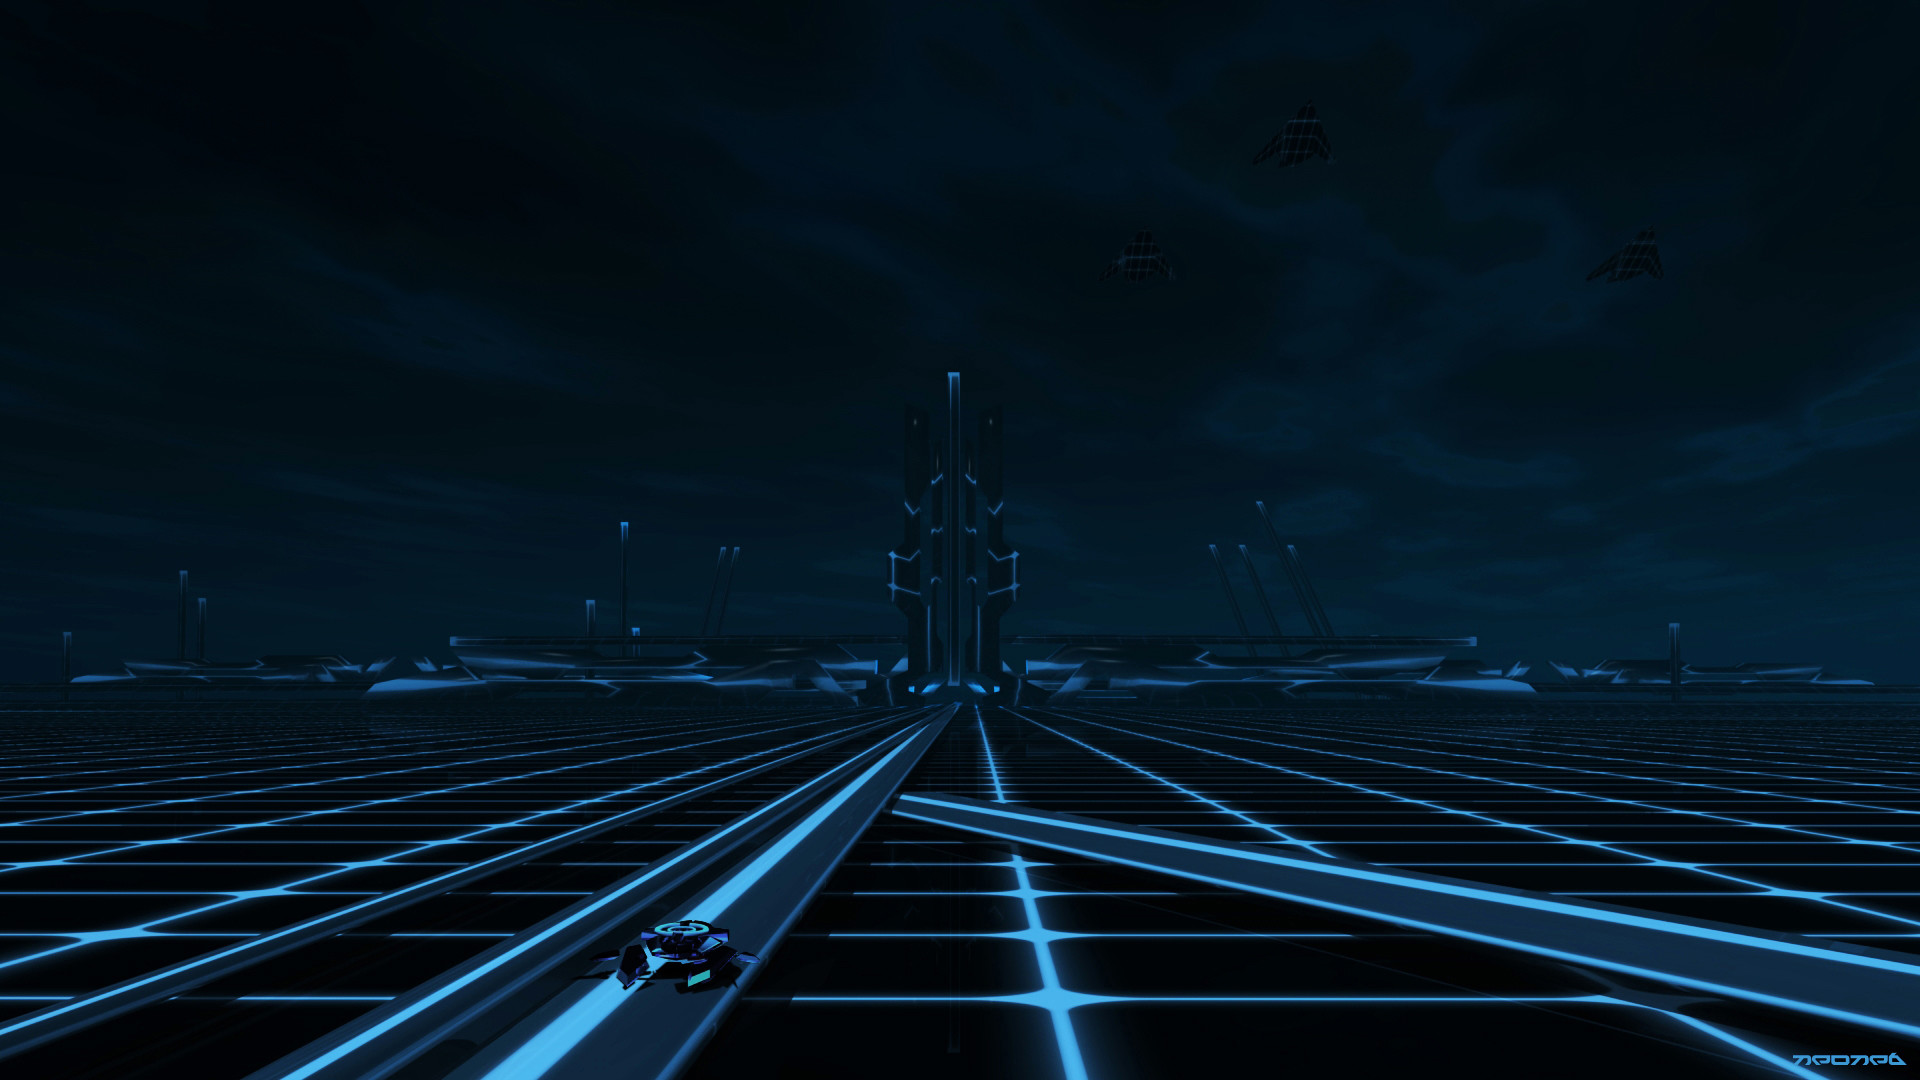 1920x1080 WinCustomize: Explore : Wallpapers : TRON The grid